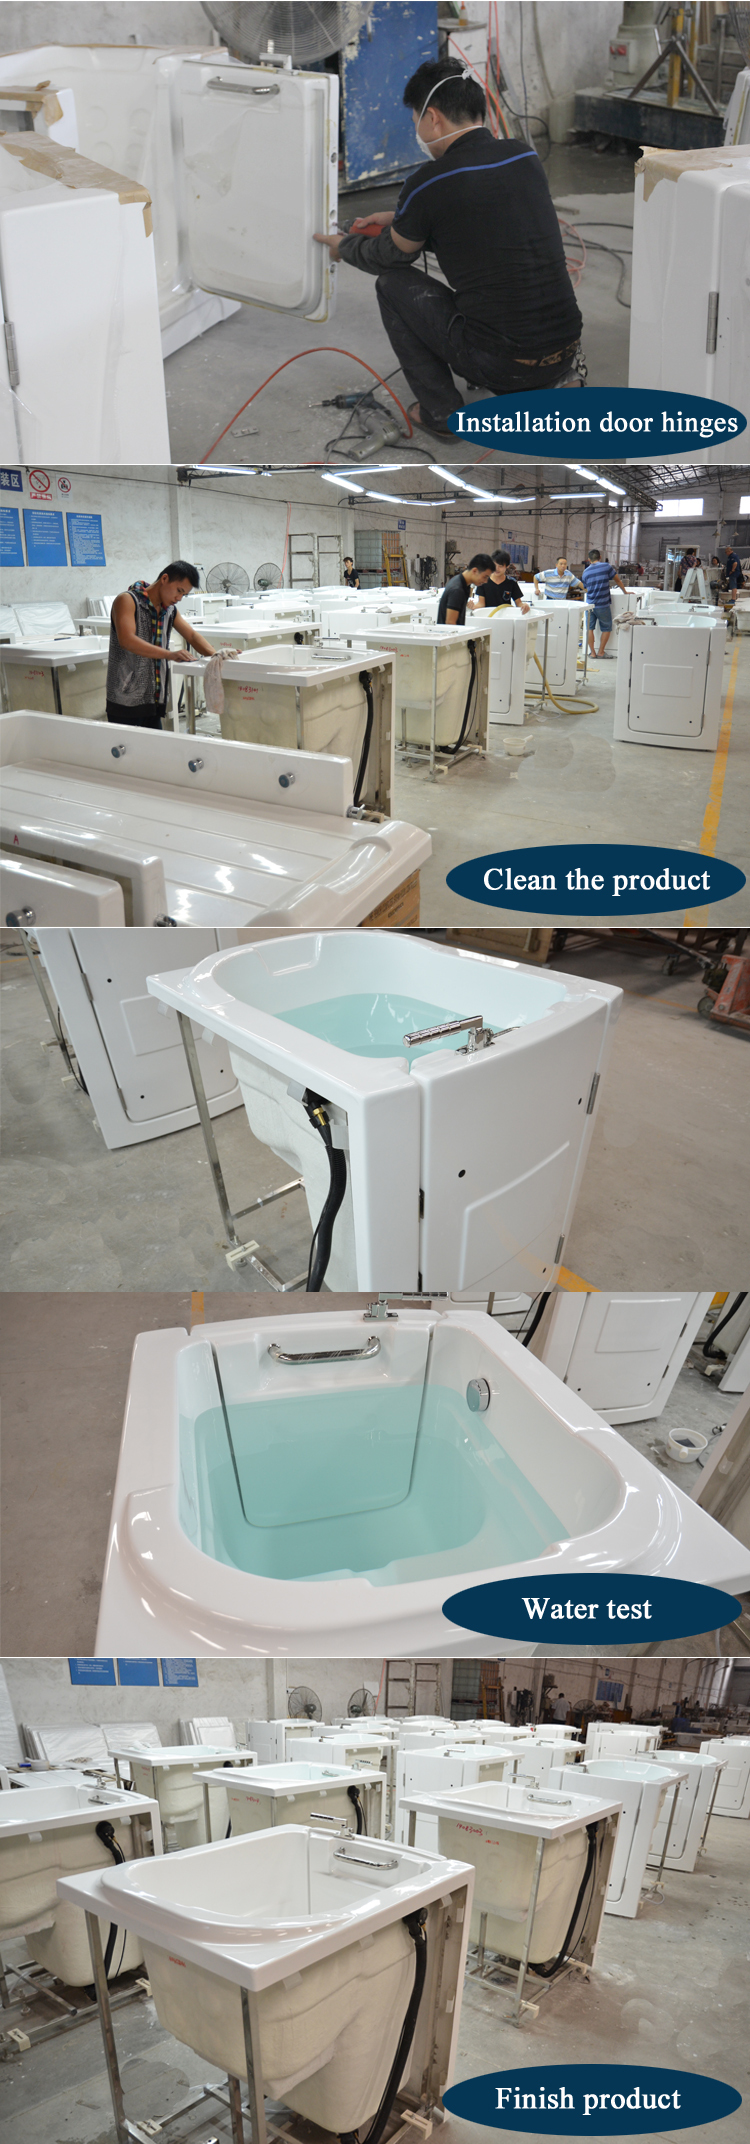 Beautiful 29 Inch White Bathroom Vanity Huge Bathroom Vanities Toronto Canada Clean Silkroad Exclusive Pomona 72 Inch Double Sink Bathroom Vanity Lowes Bathroom Vanity Tops Young Memento Bathroom Scene ColouredReplace Bathtub Shower Doors Elderly Walk In ..